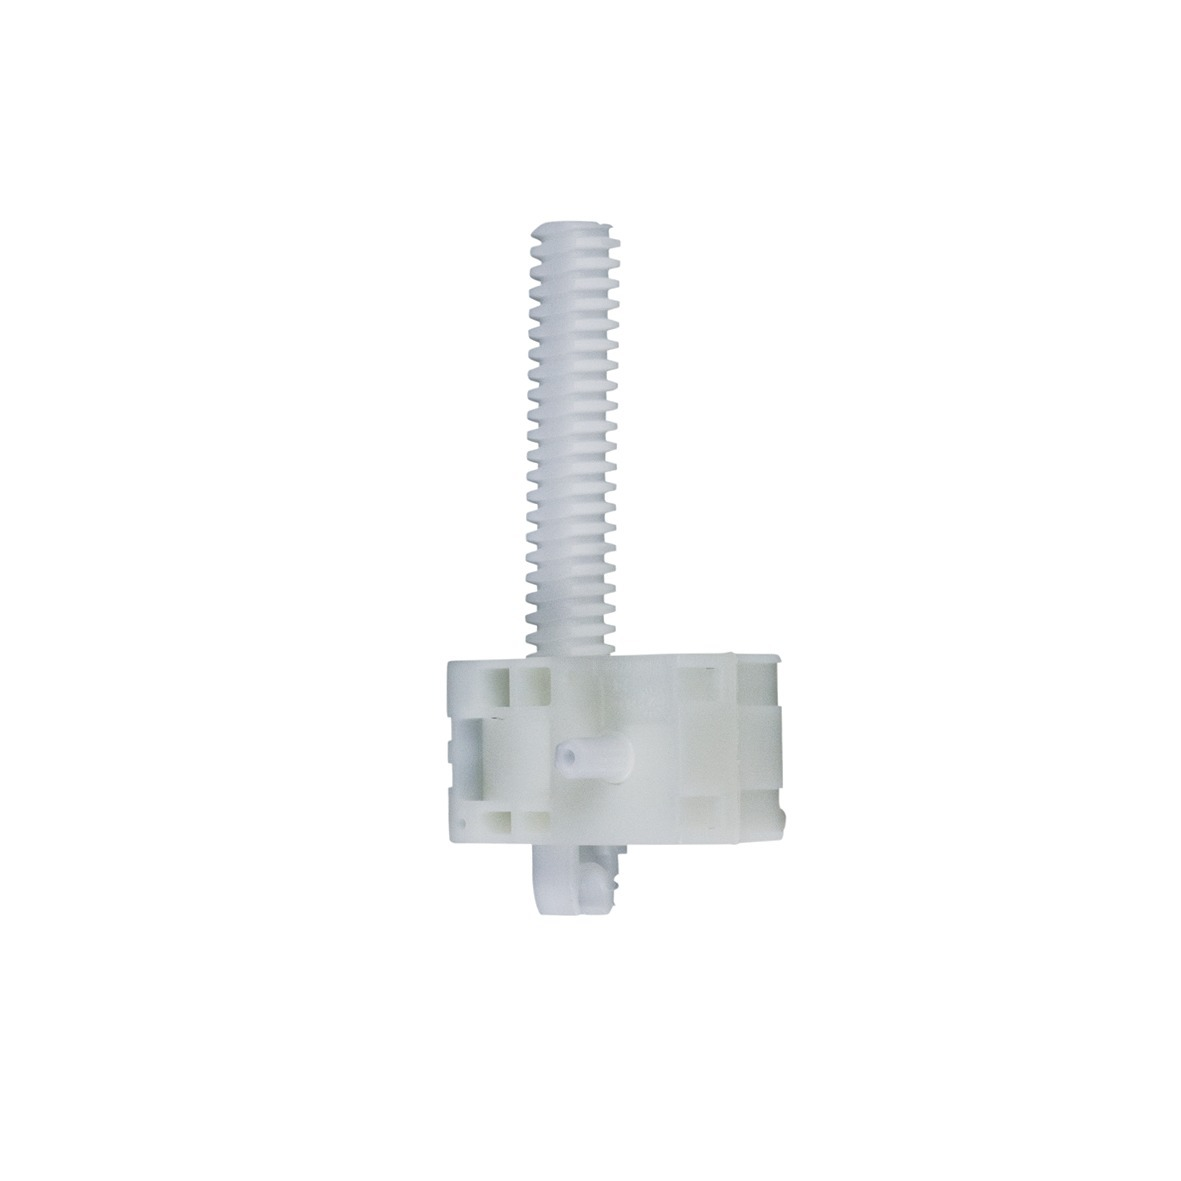 4810-101-95605 GEAR OF ADJUSTABLE FOOT